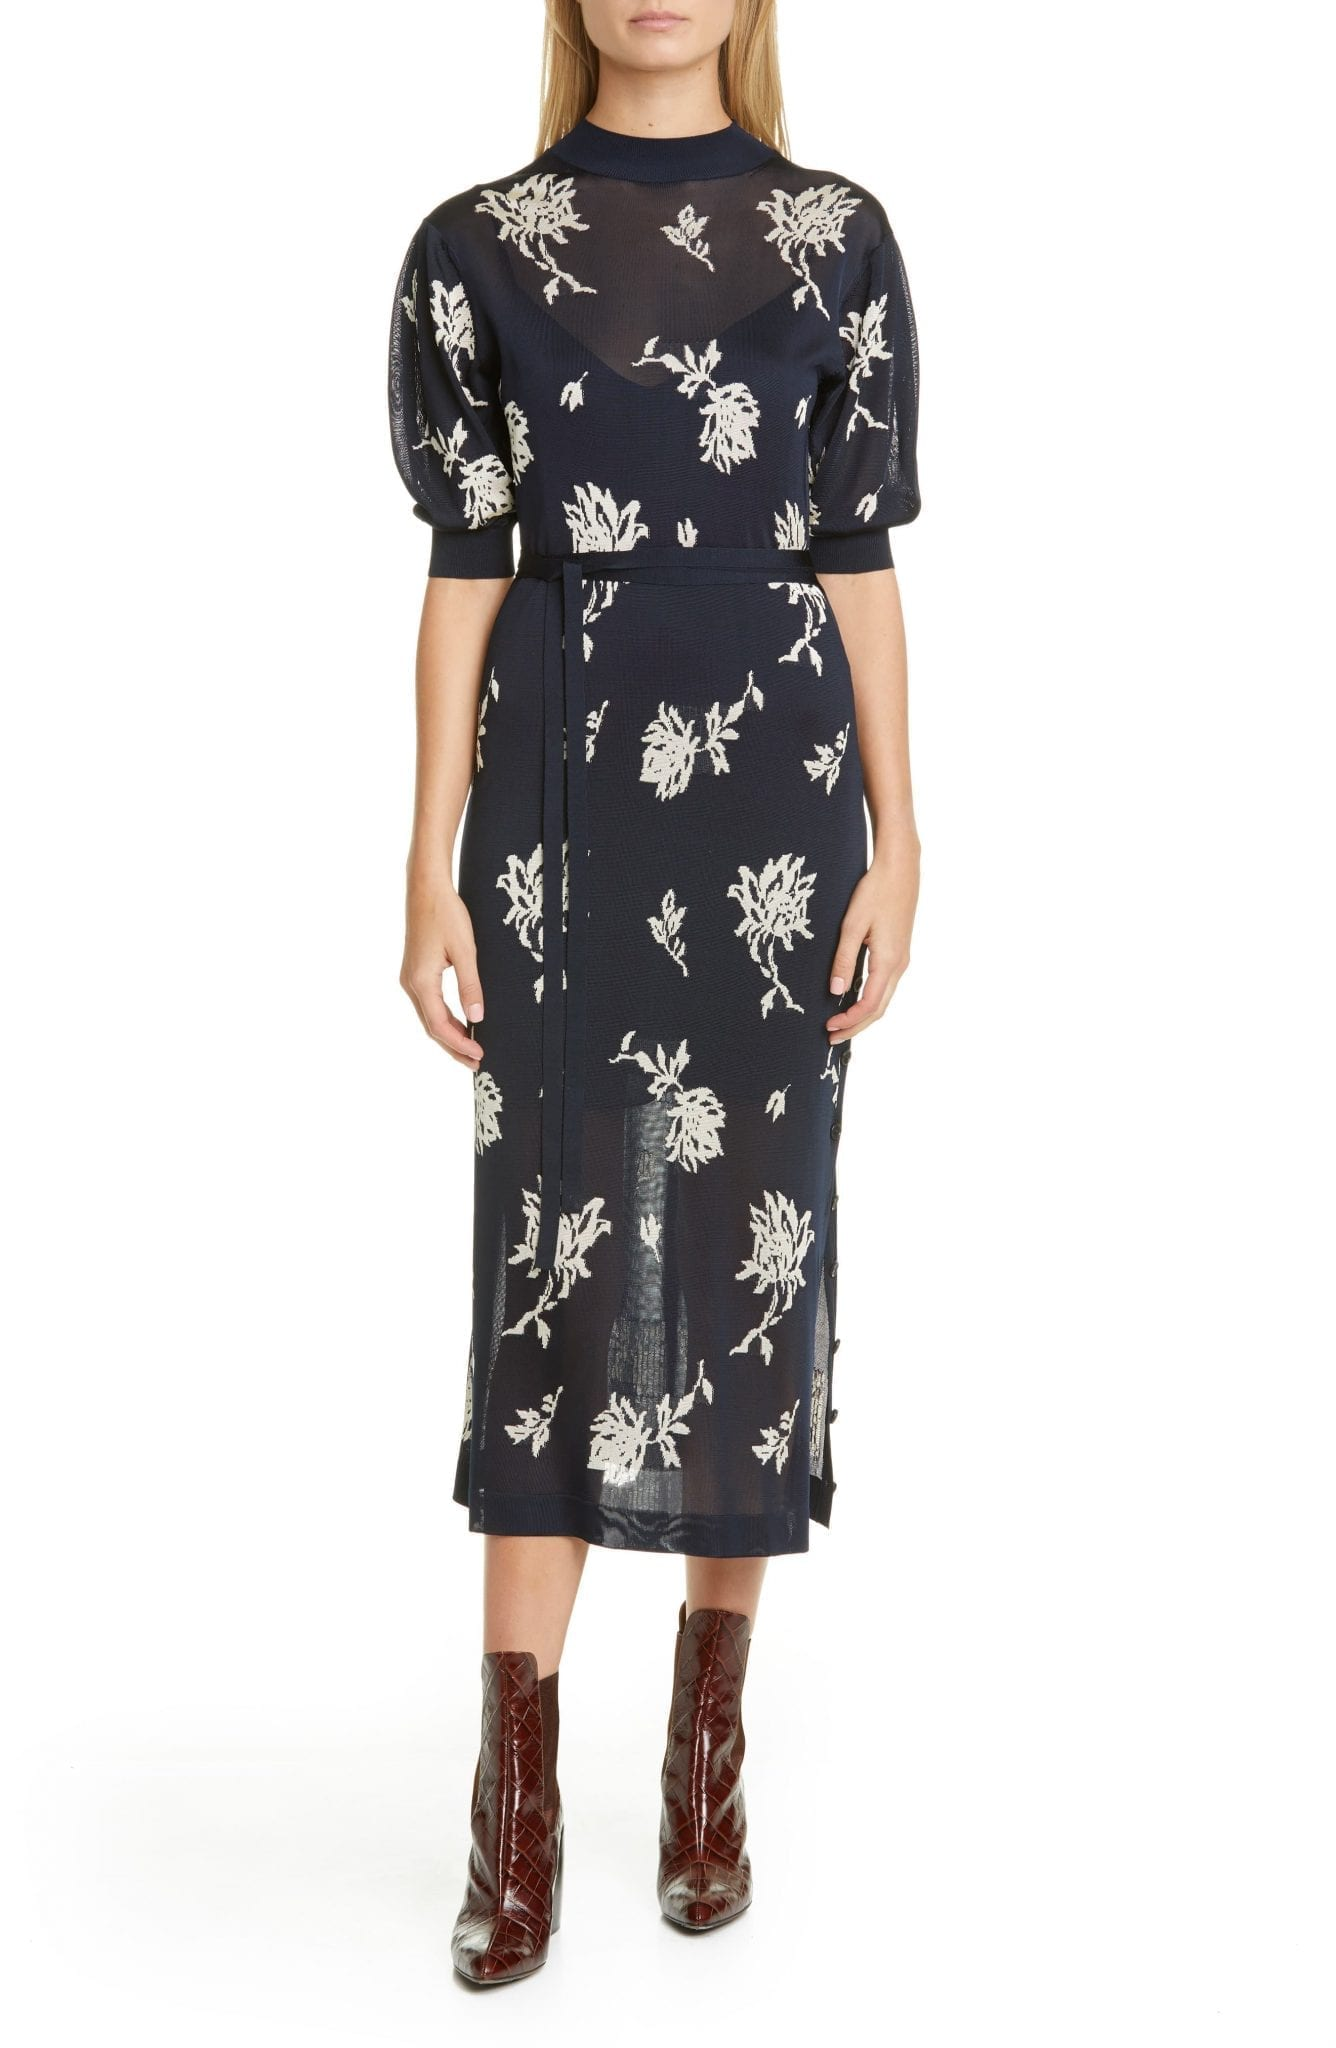 CHLOÉ Floral Jacquard Midi Sweater Dress